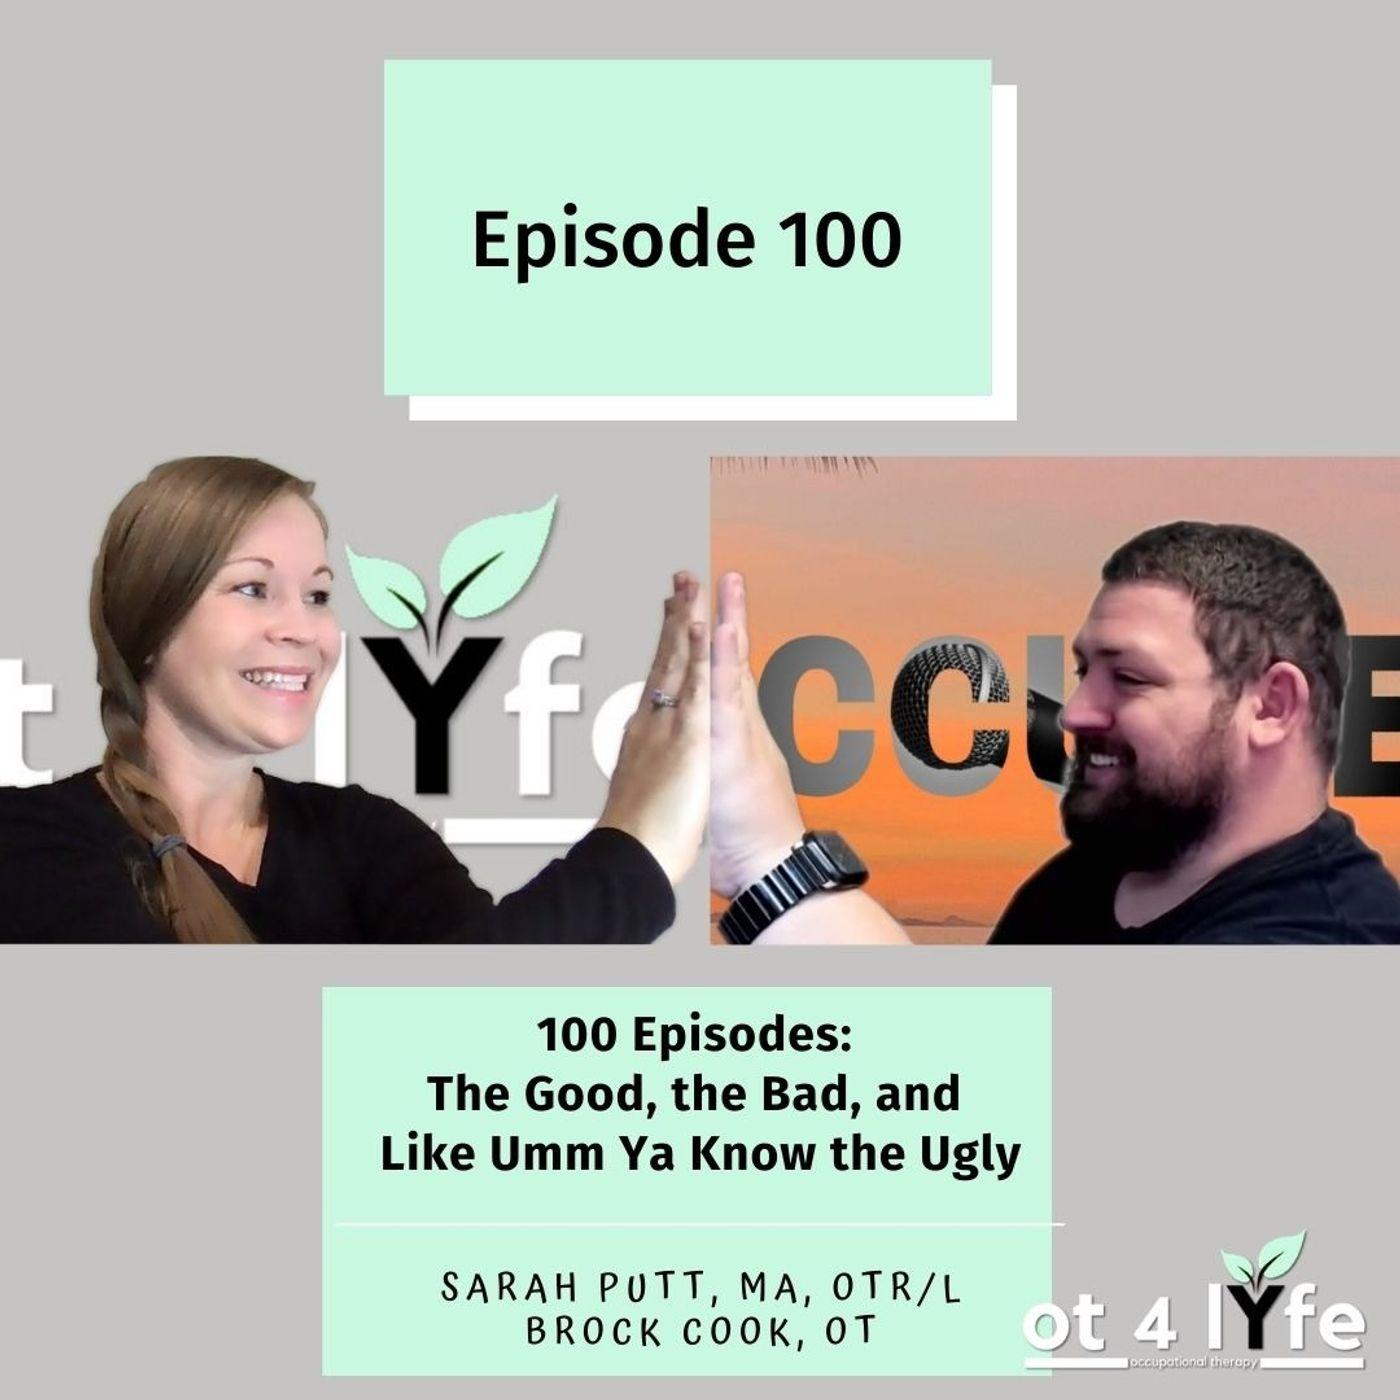 100 Episodes: The Good, the Bad, and Like Umm Ya Know the Ugly